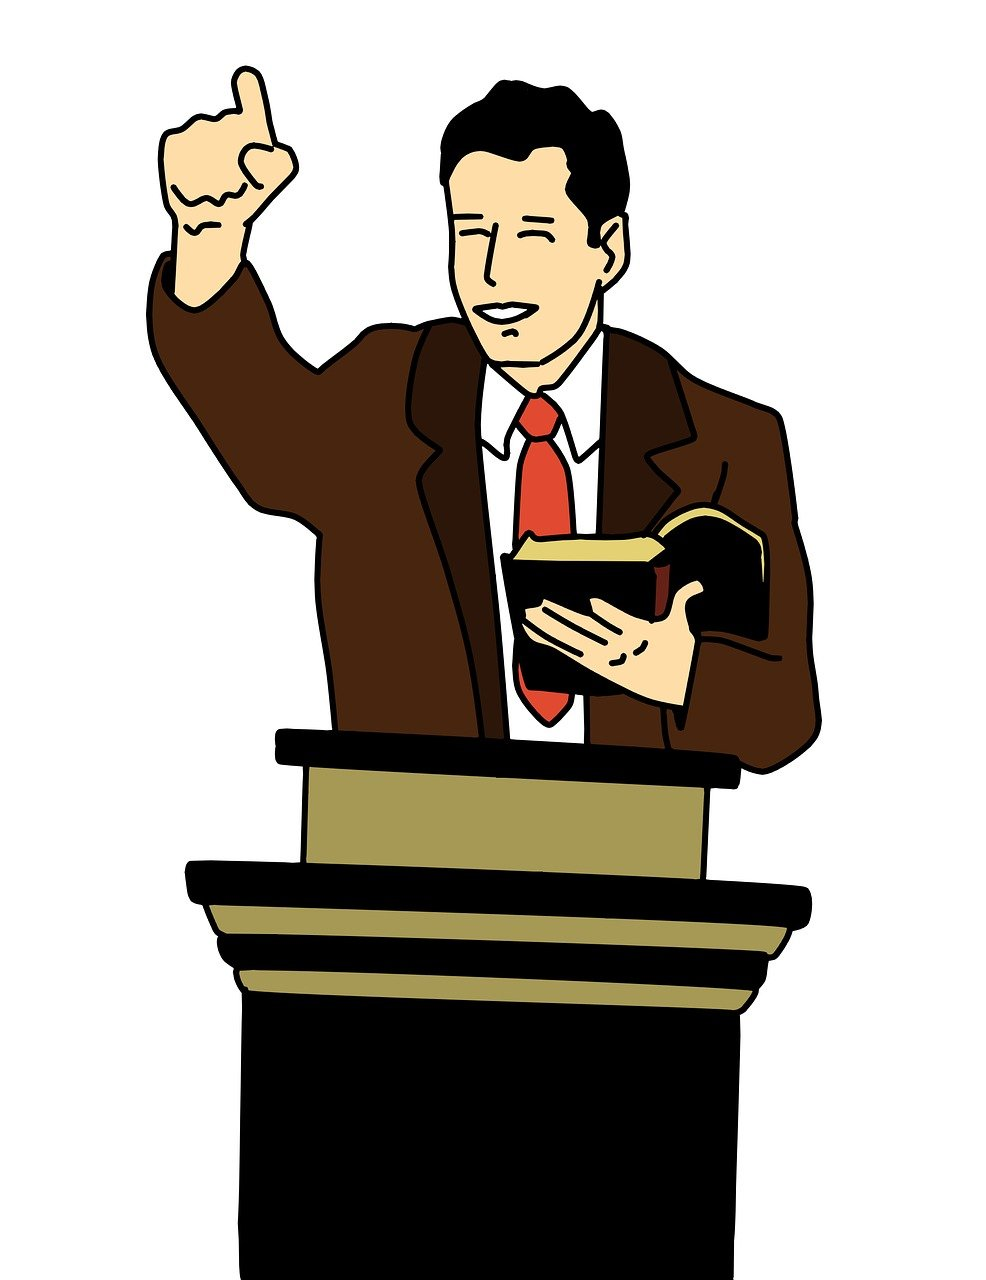 clipart showing a man, in a shirt and tie, preaching at a pulpit